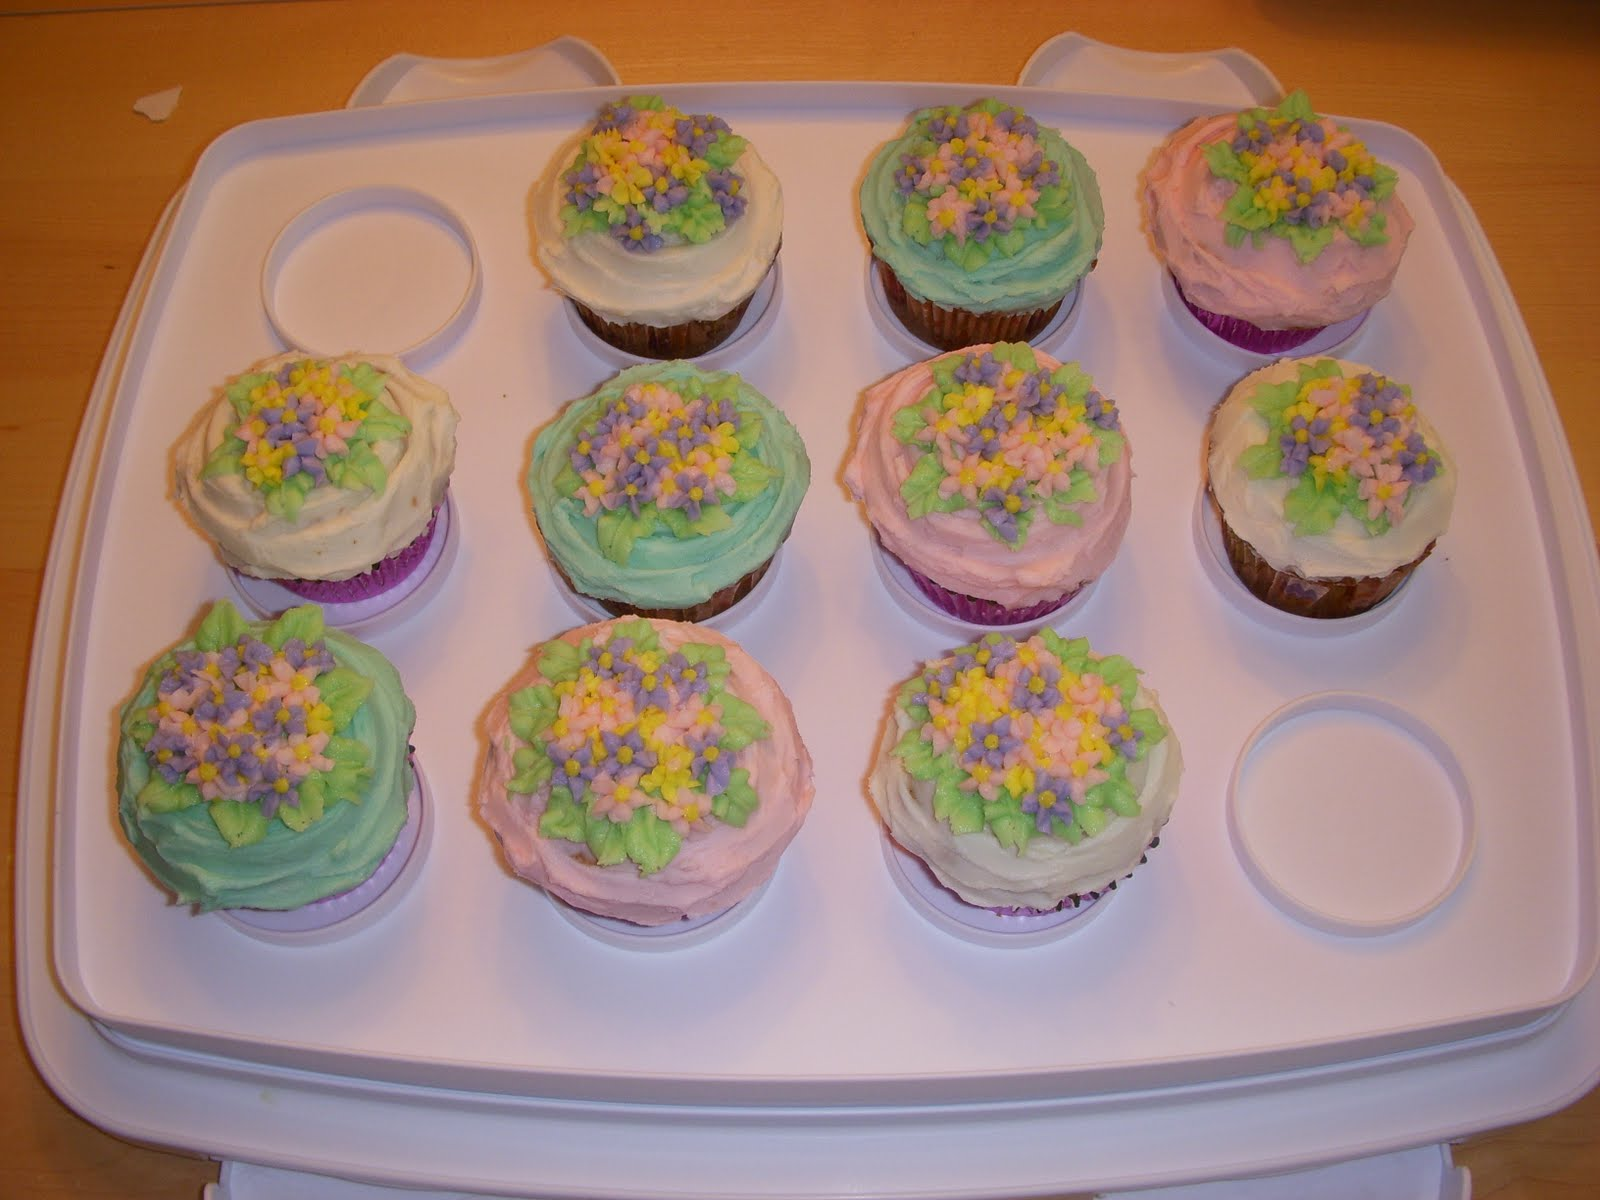 Brings May Flowers... cupcakes that is. Making Memories